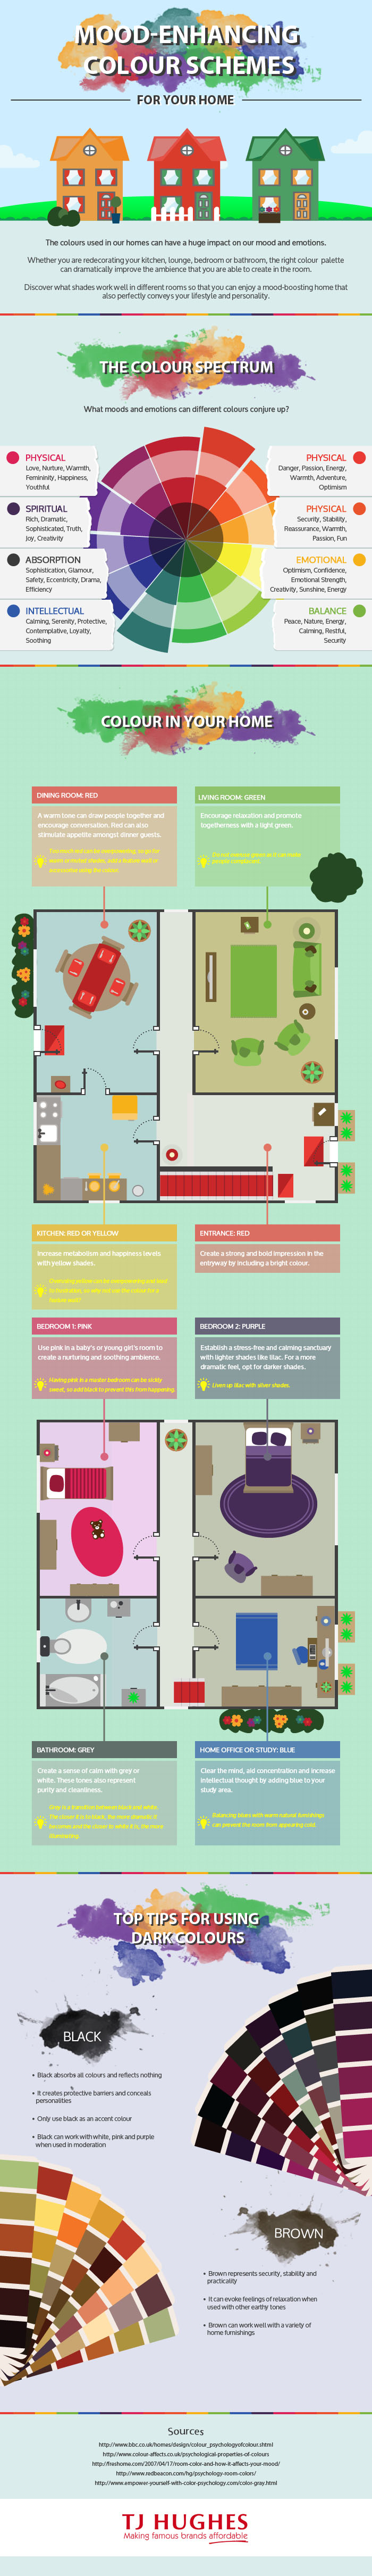 Mood-Enhancing Colour Schemes For Your Home